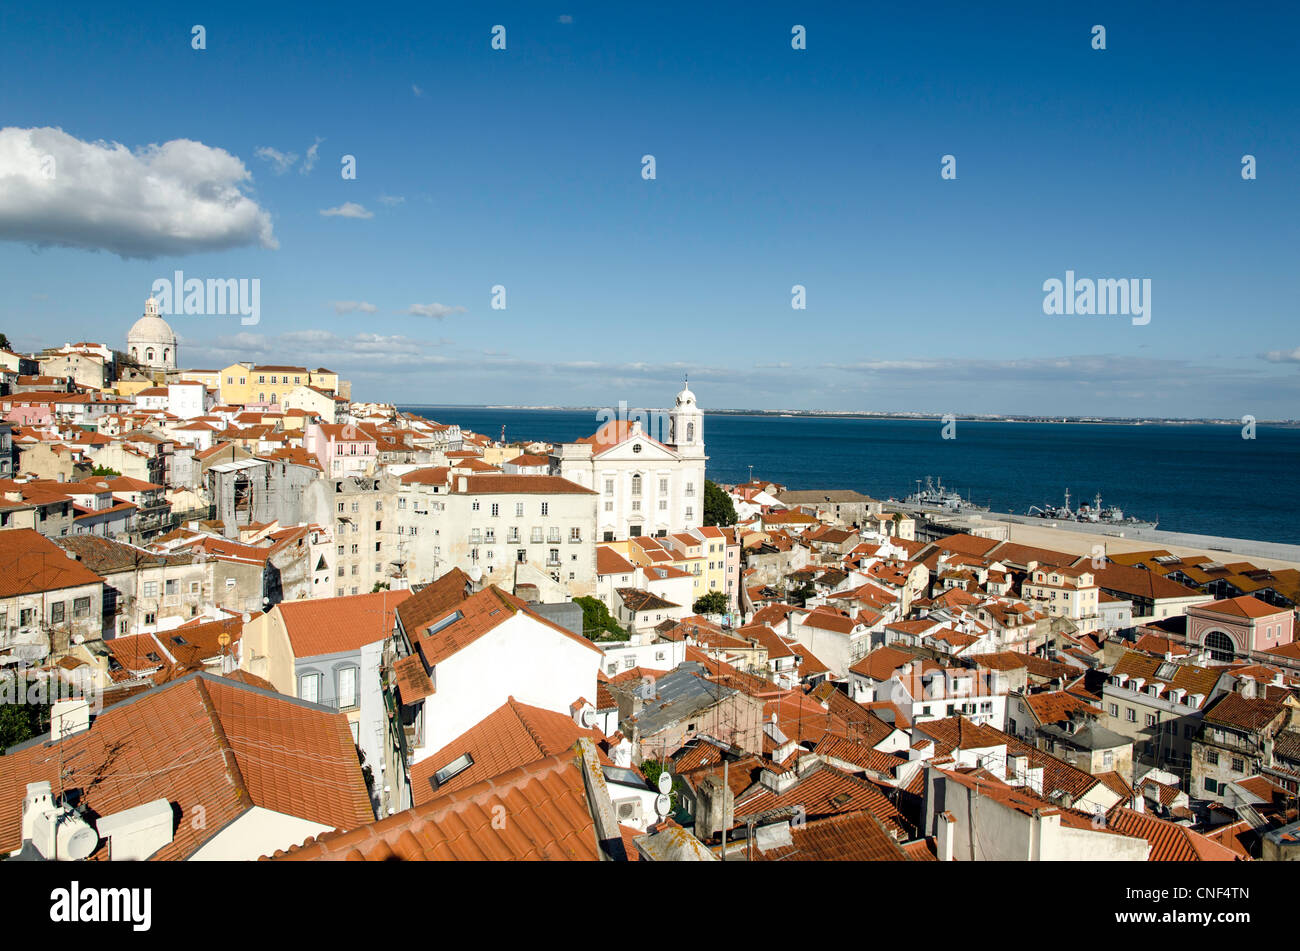 Alfama district Lisbon Portugal Europe Stock Photo